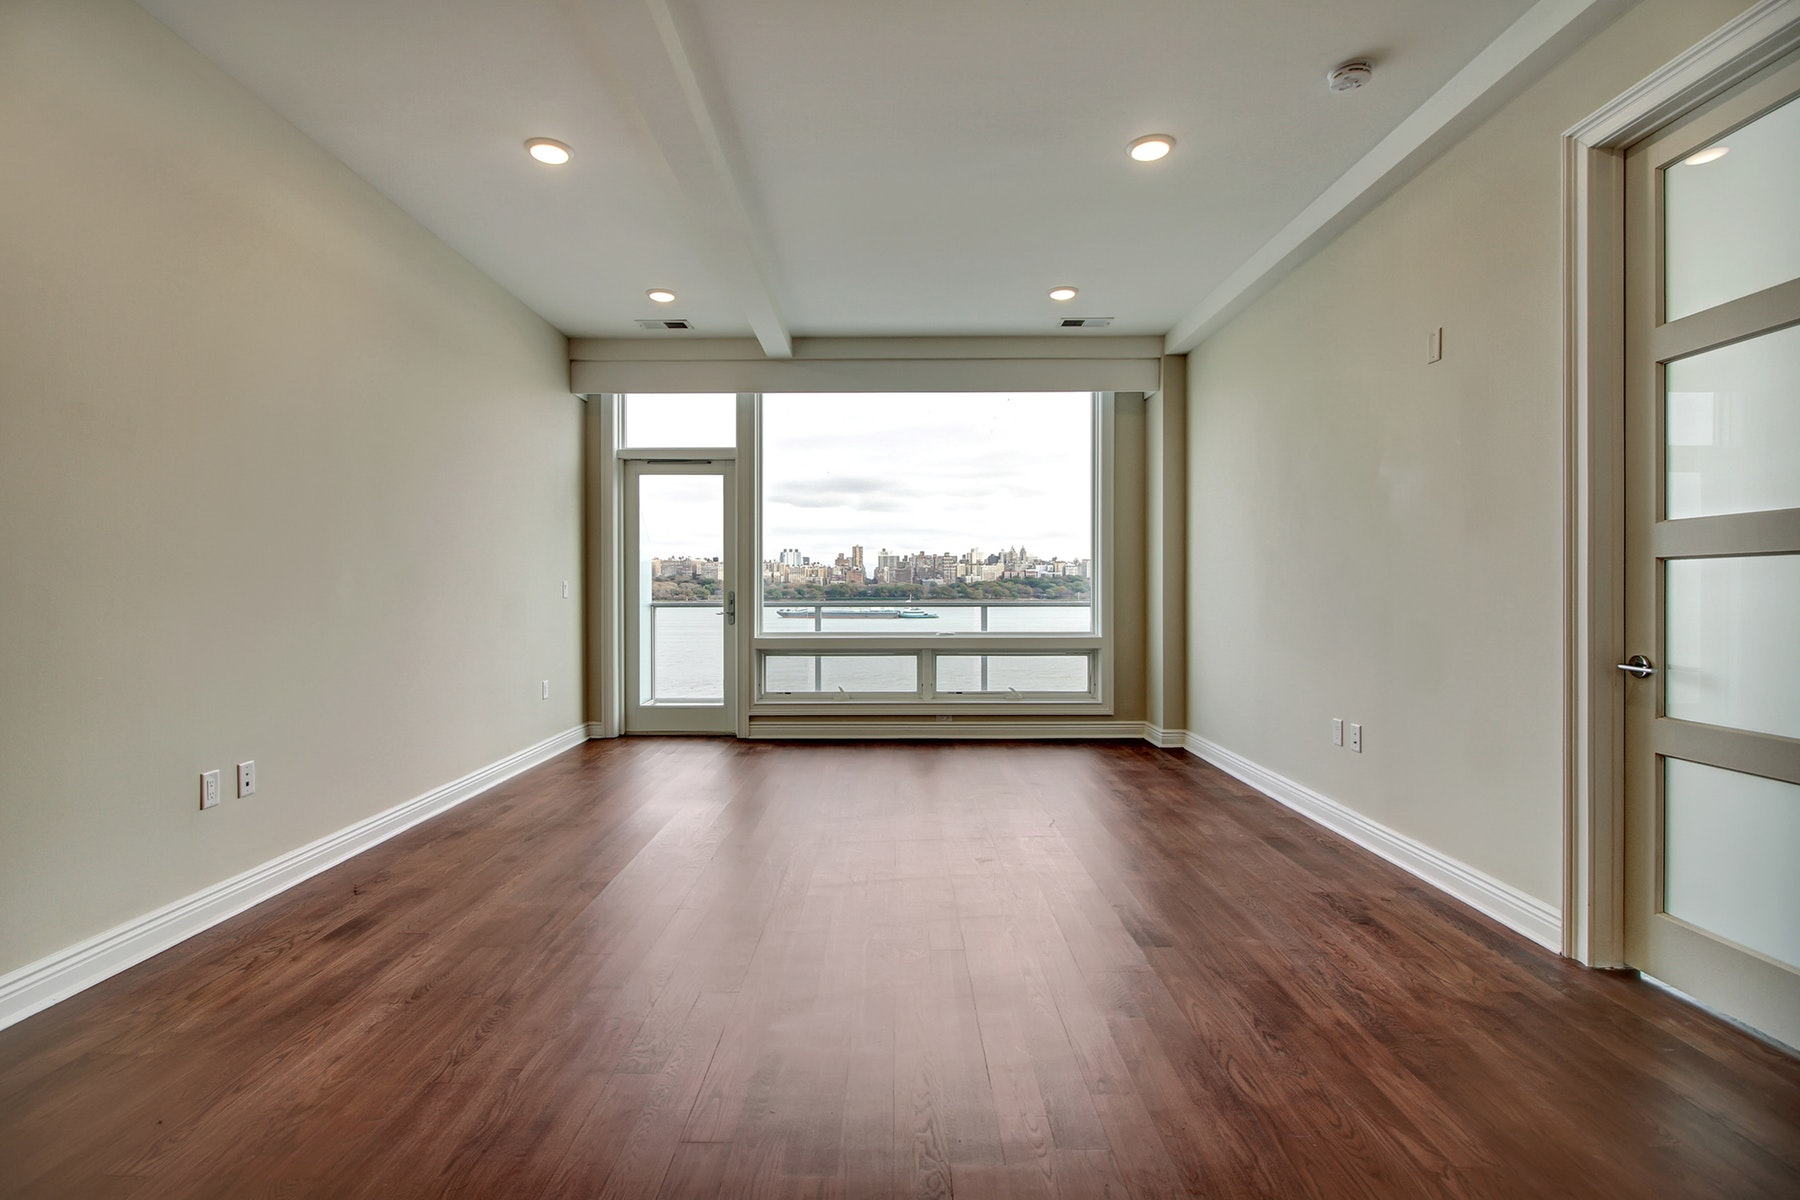 Condominium for Rent at The Pearl 9 Somerset Lane #619, Edgewater, New Jersey 07020 United States